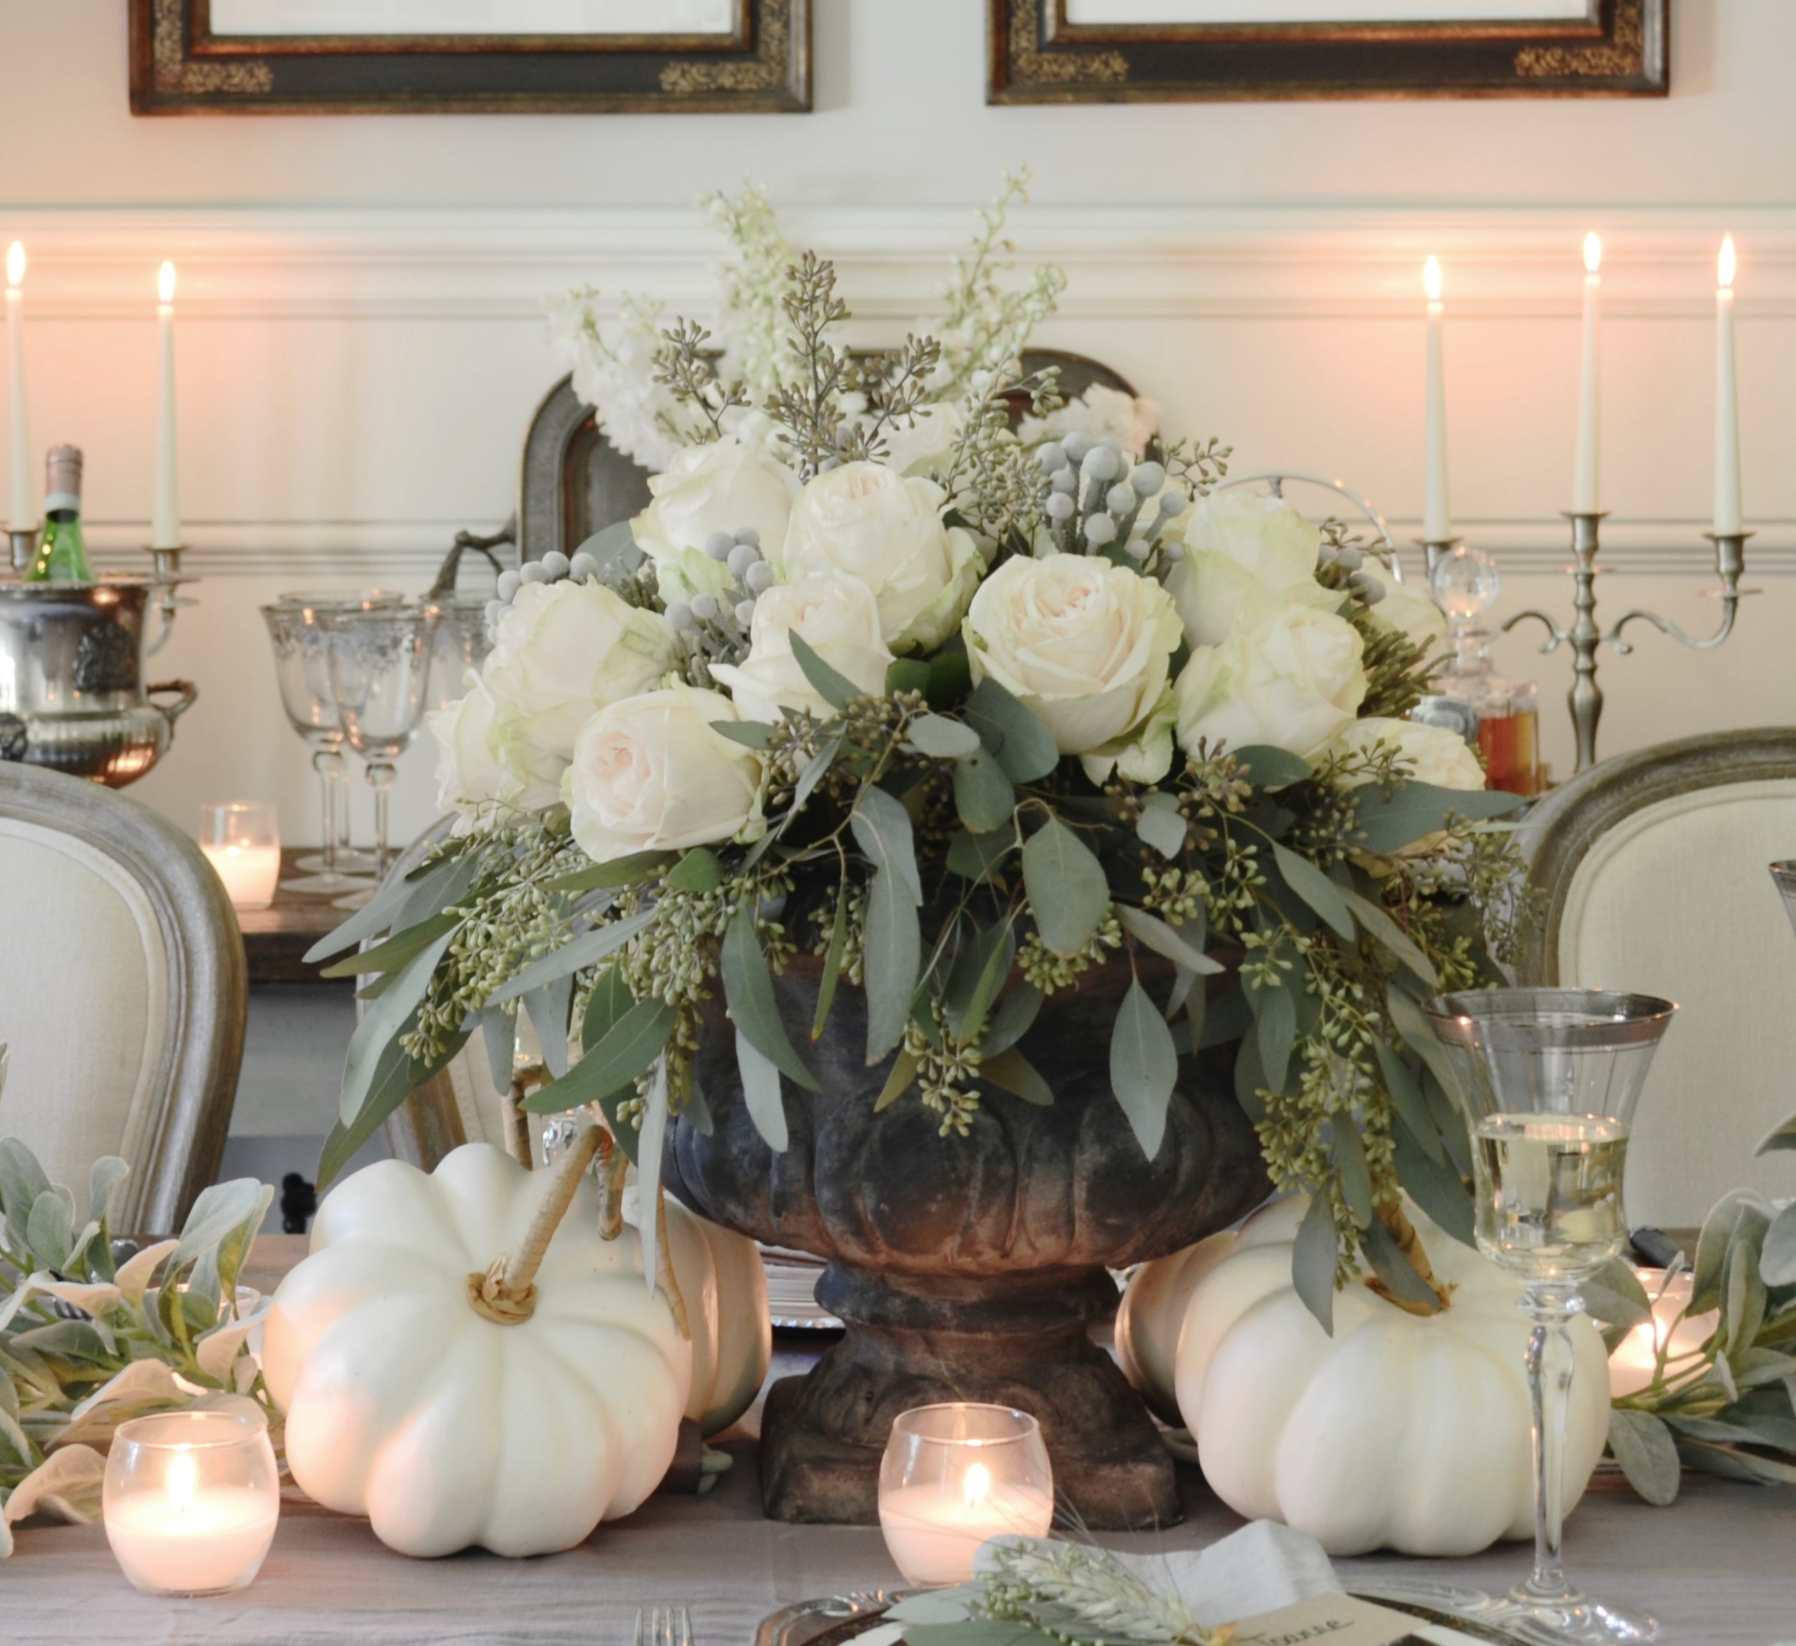 How To Make This Fall Centerpiece In 3 Easy Steps Sanctuary Home Decor